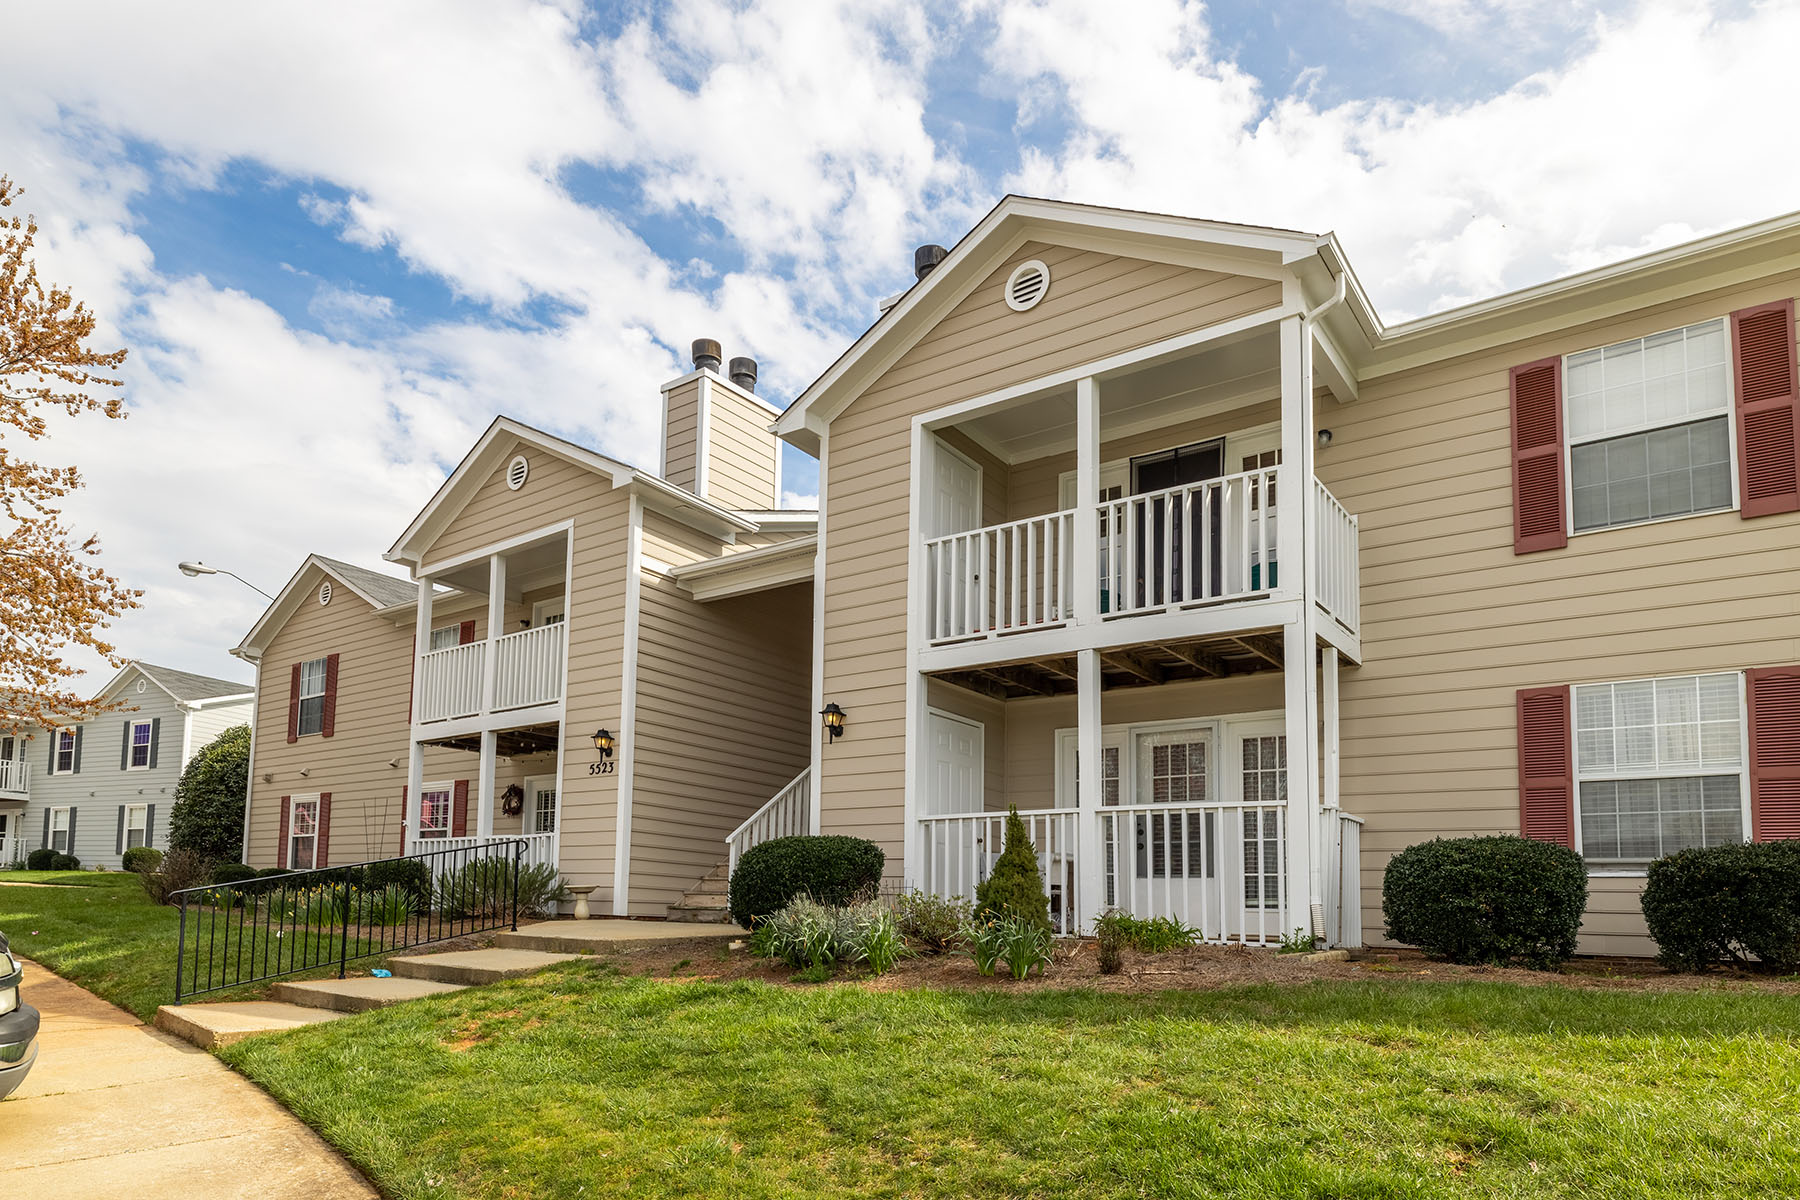 Single Family Homes for Sale at CHARLESTOWNE VILLAGE 5523 Hornaday Rd Greensboro, North Carolina 27409 United States